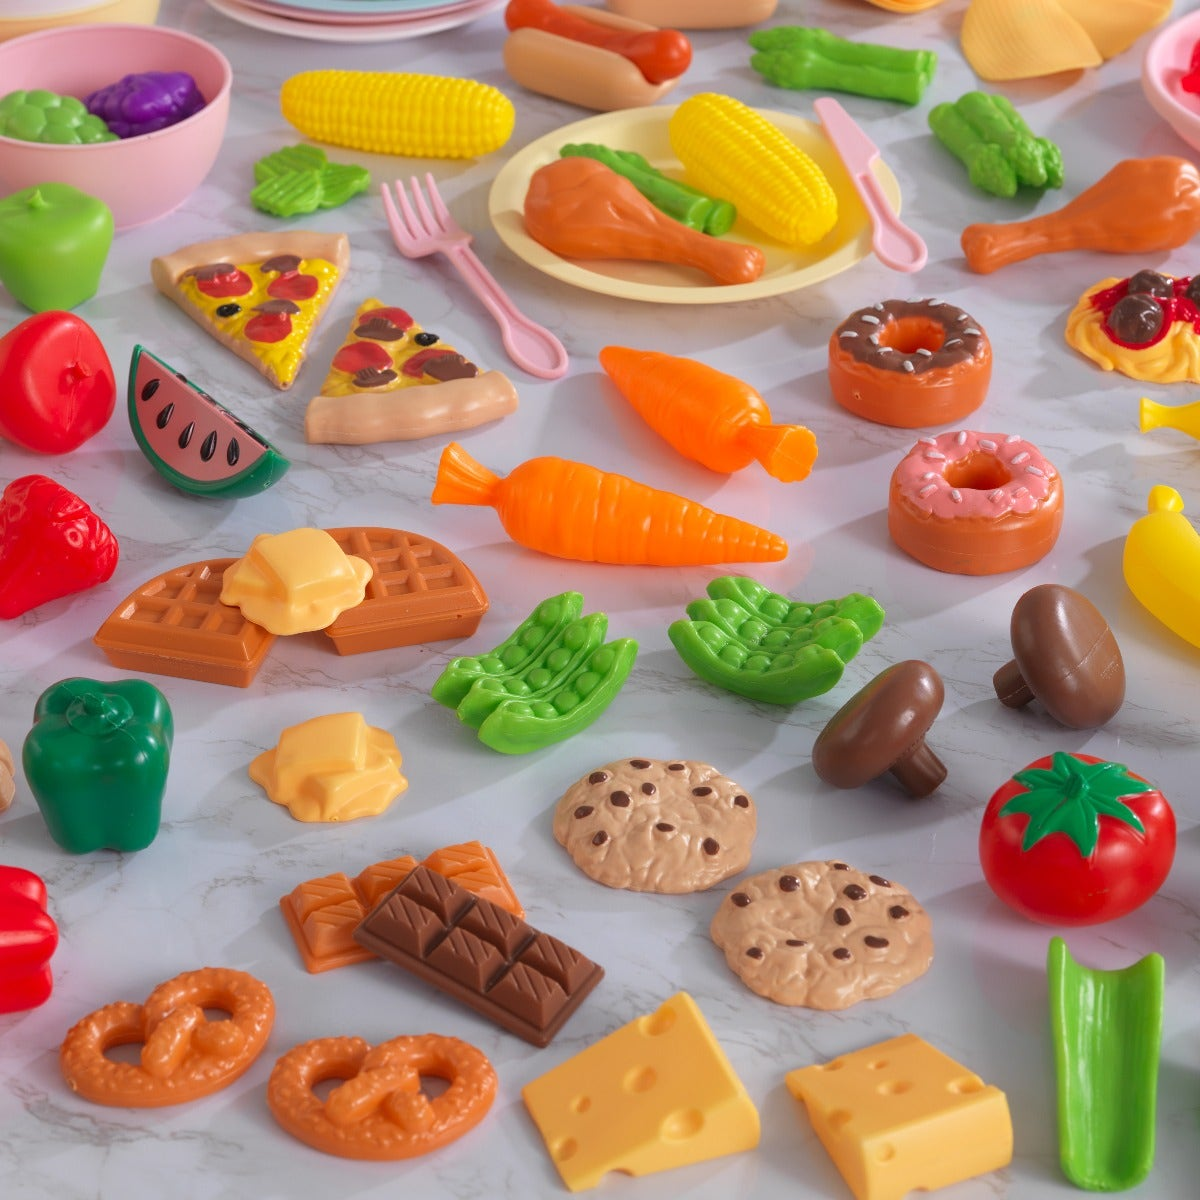 Play food set includes fruit, vegetables, snacks, pizza, waffles and more